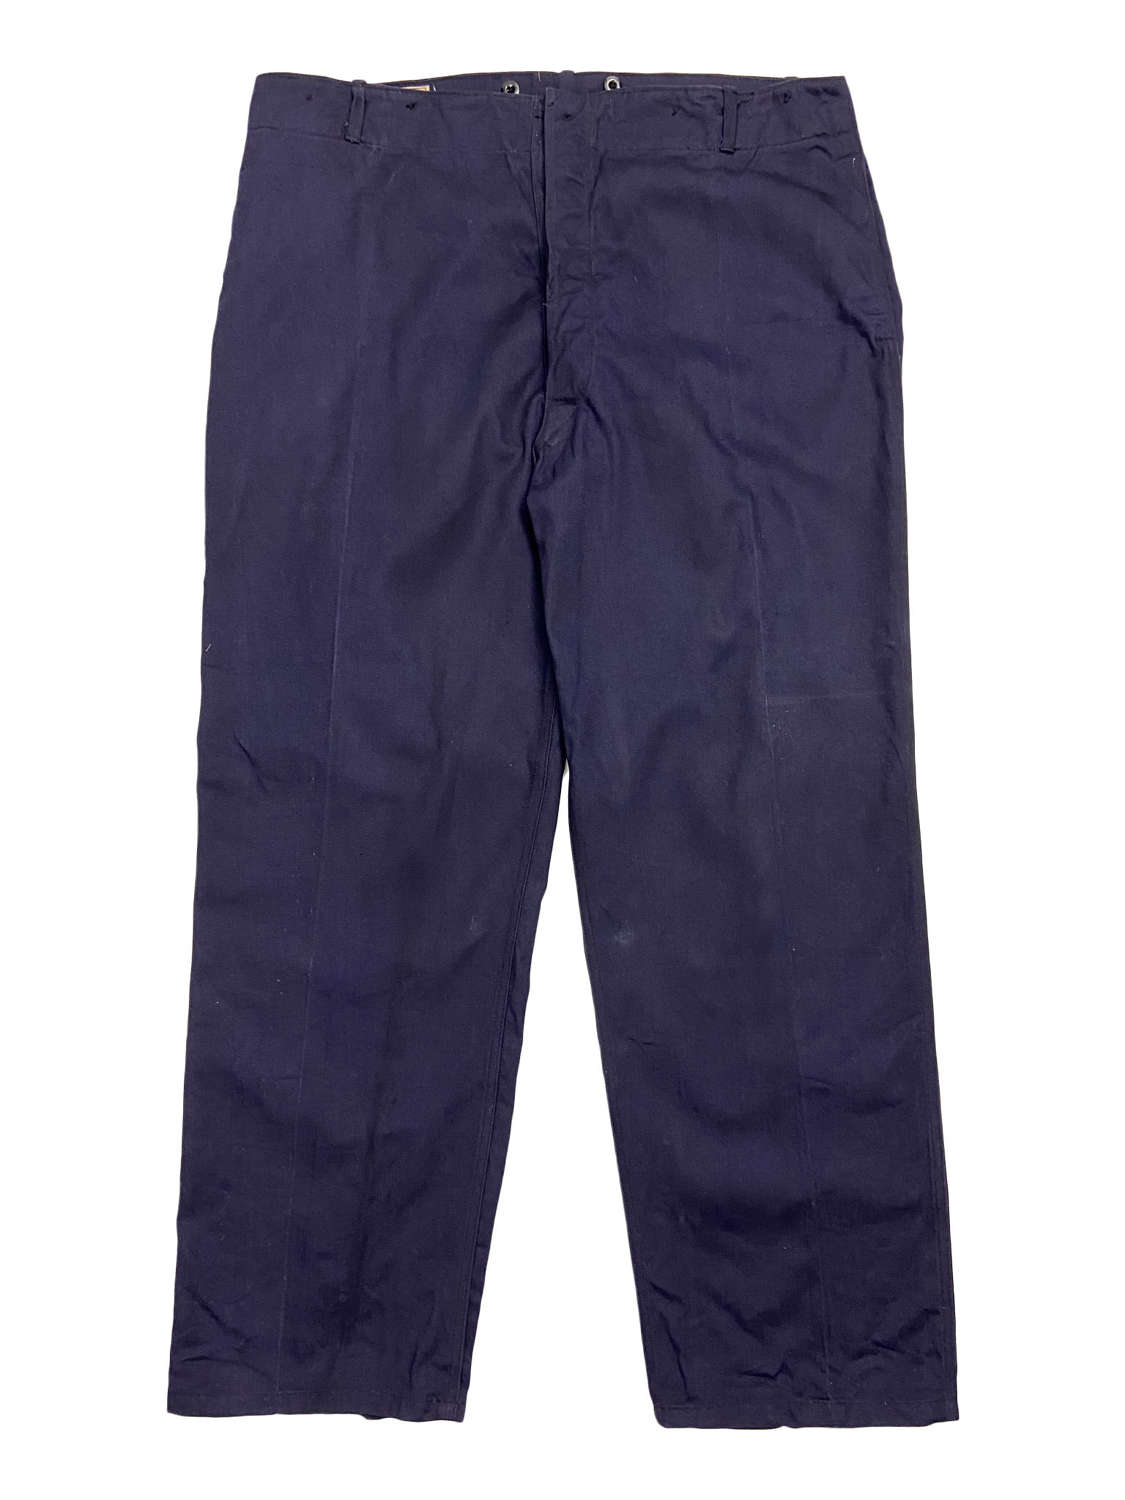 Original 1950s Navy Blue British Work Trousers by 'Holdfast'